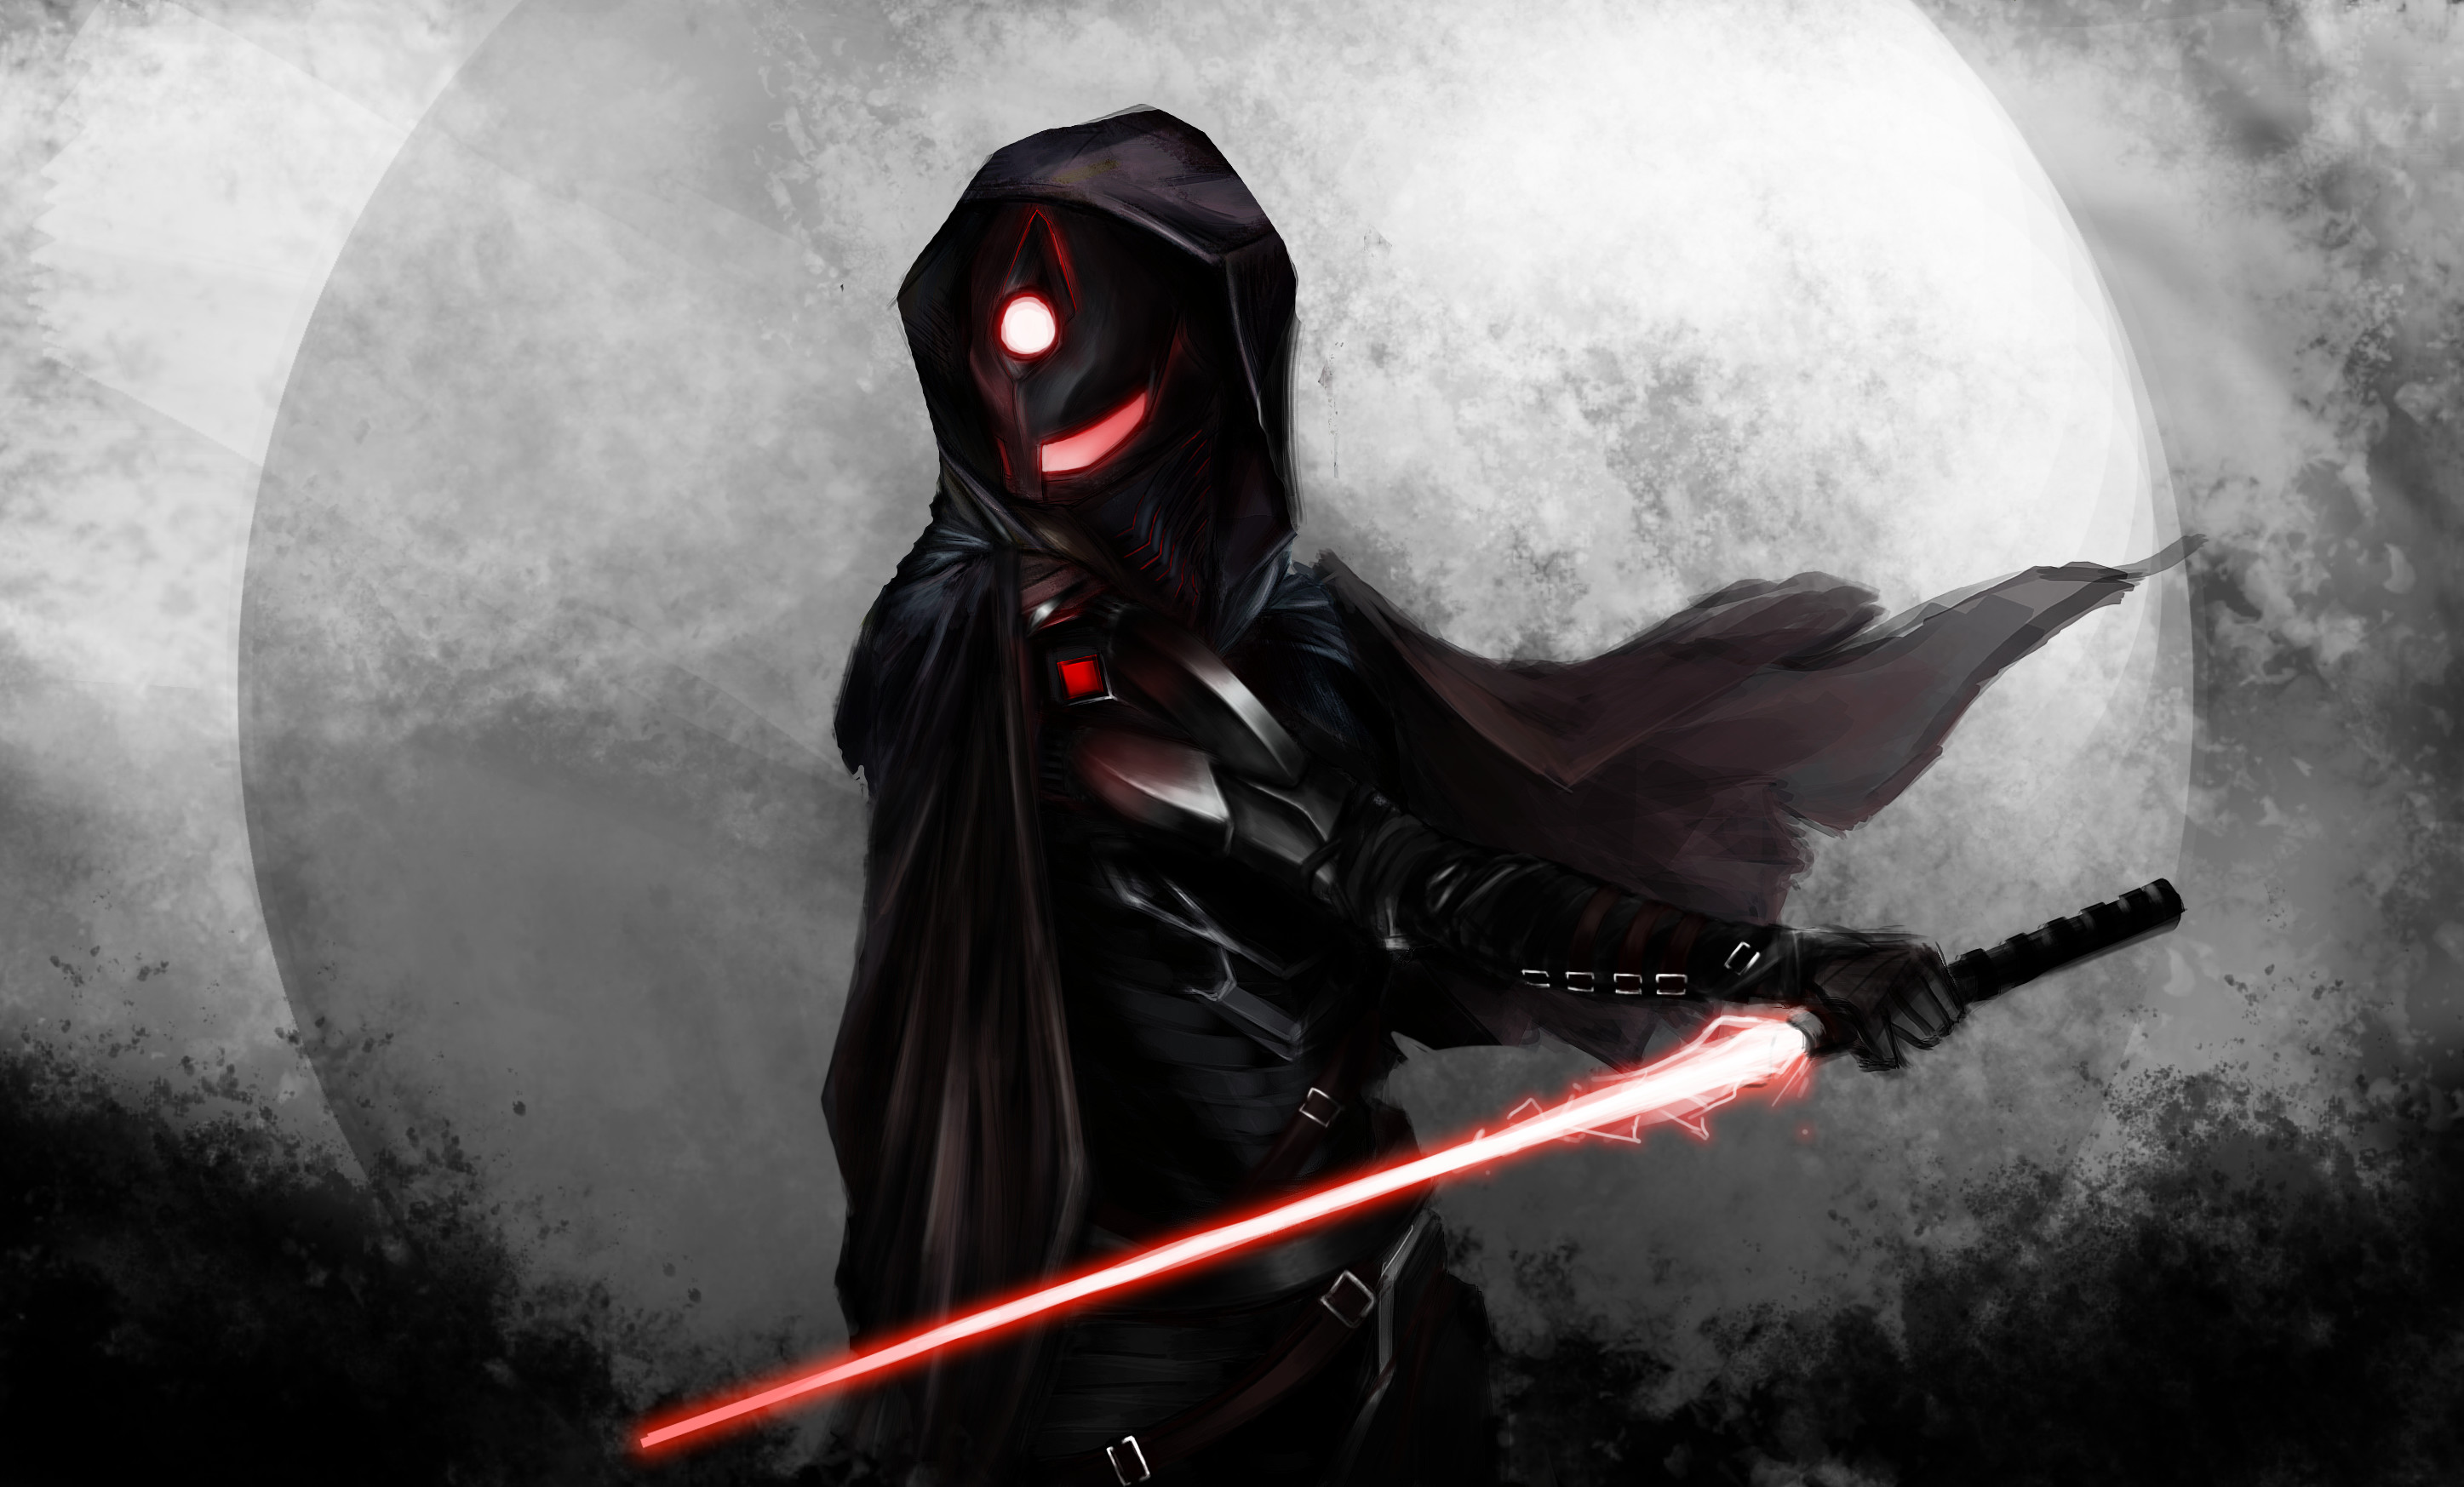 Star Wars Sith Empire Wallpaper Pictures to Pin on Pinterest .